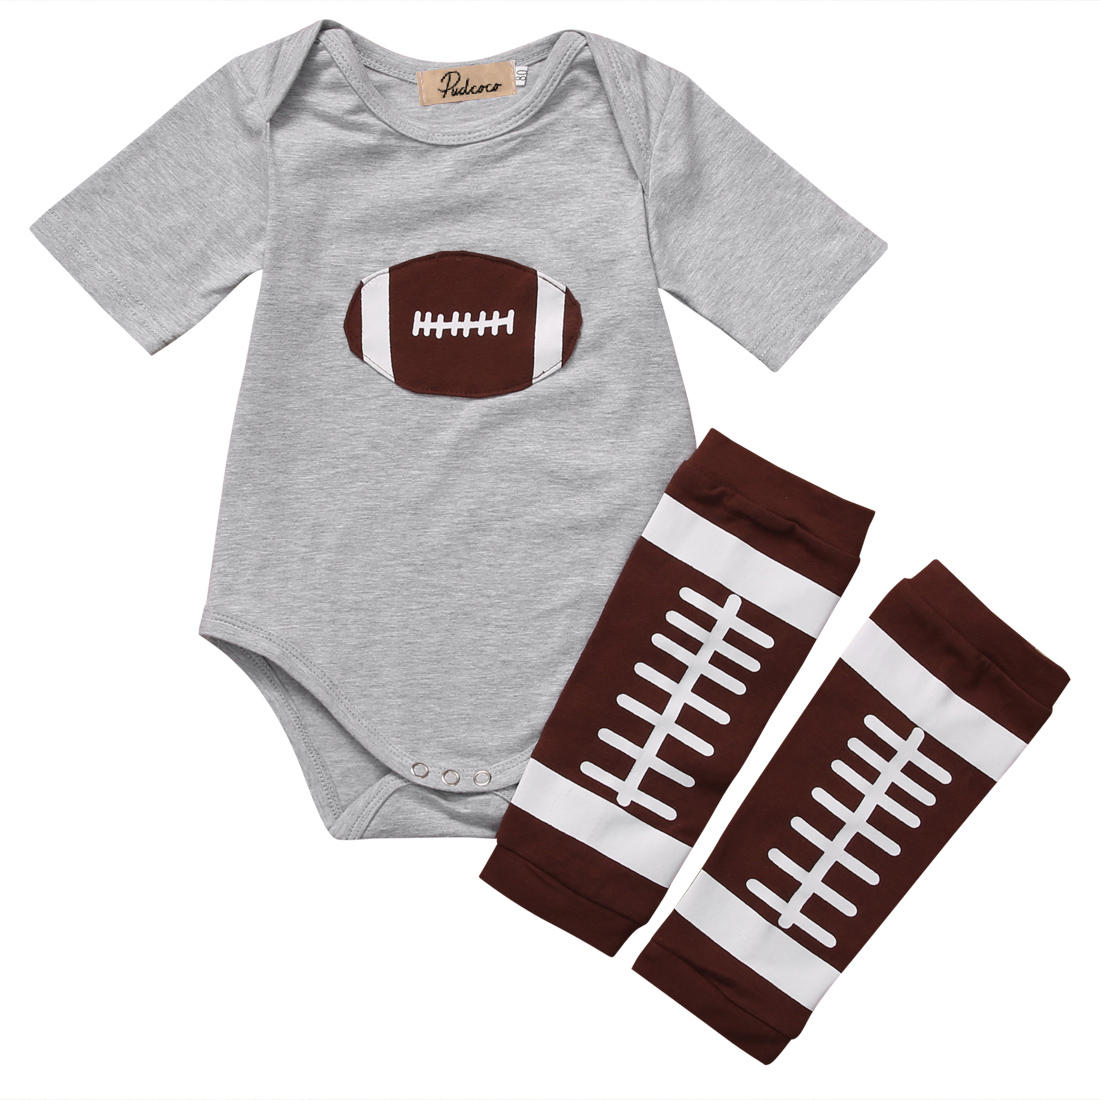 0-24M Baby Newborn Infant Toddler Boy Girl Unisex Rugby Tops Gray Romper+Pants Leg Outfits Short Sleeve Cotton Clothing Set NEW(China (Mainland))